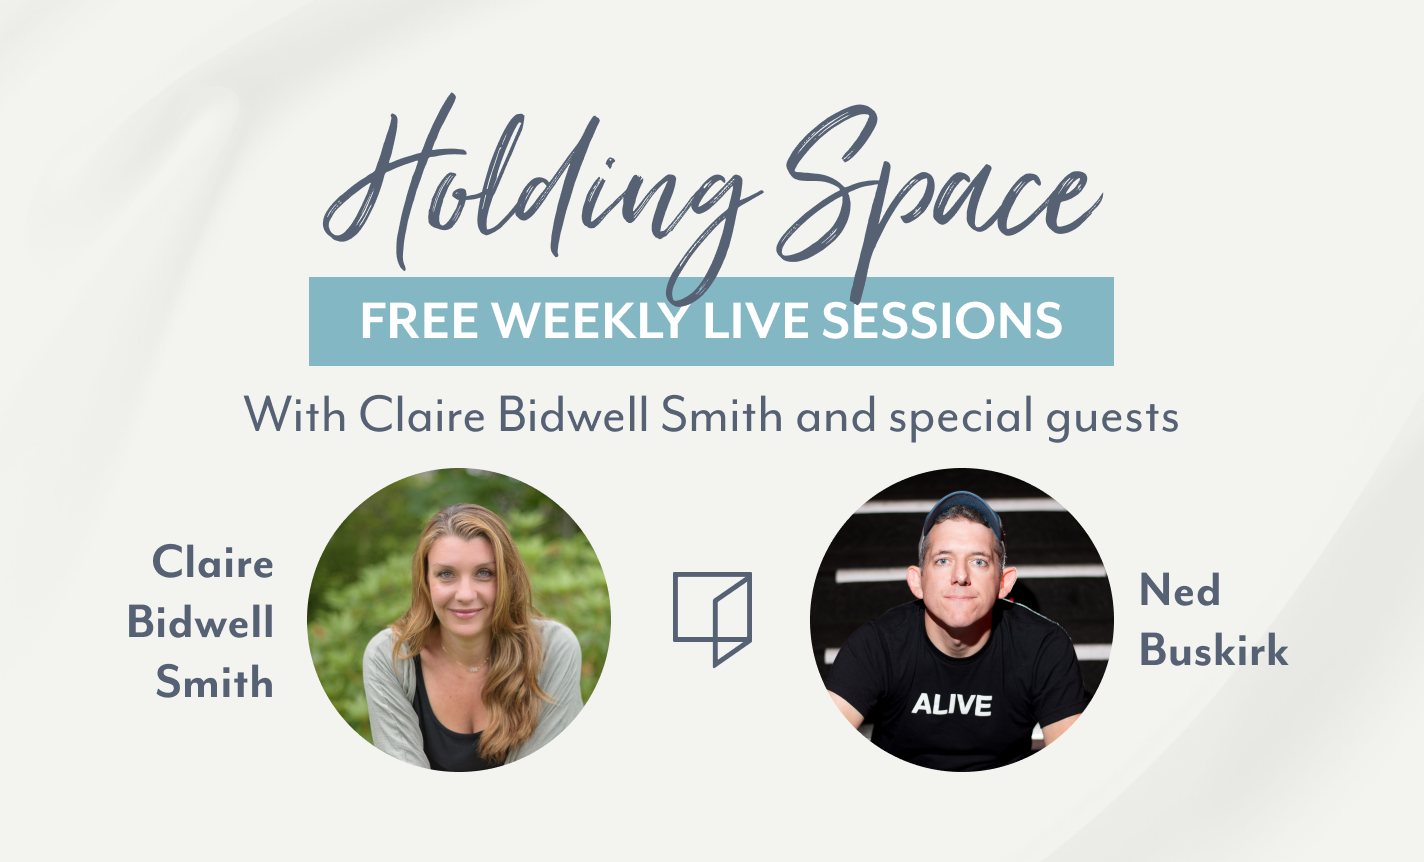 Holding Space with Claire Bidwell Smith and Ned Buskirk